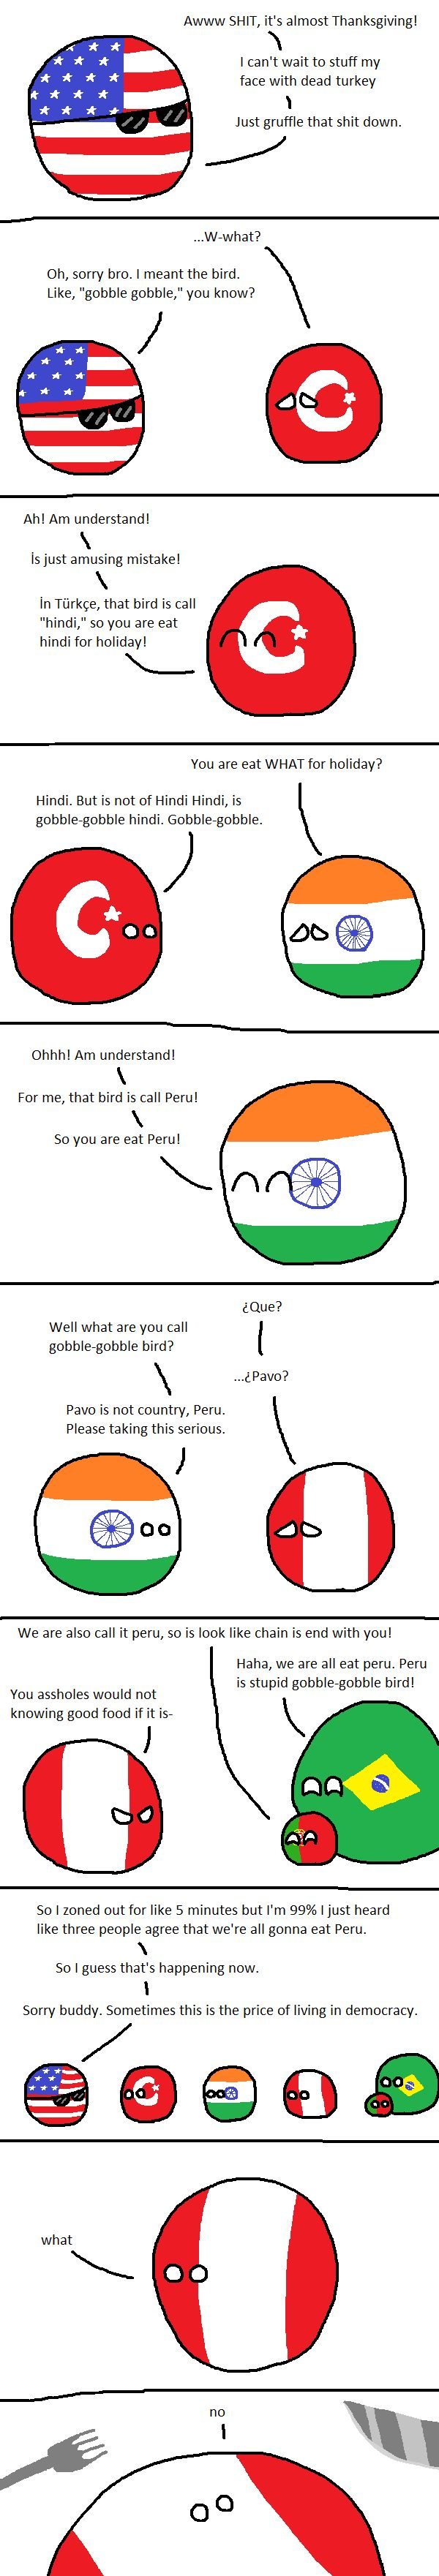 Eating Turkey (USA, Turkey, India, Peru, Brazil, Portugal) by FVBLT #polandball #countryball